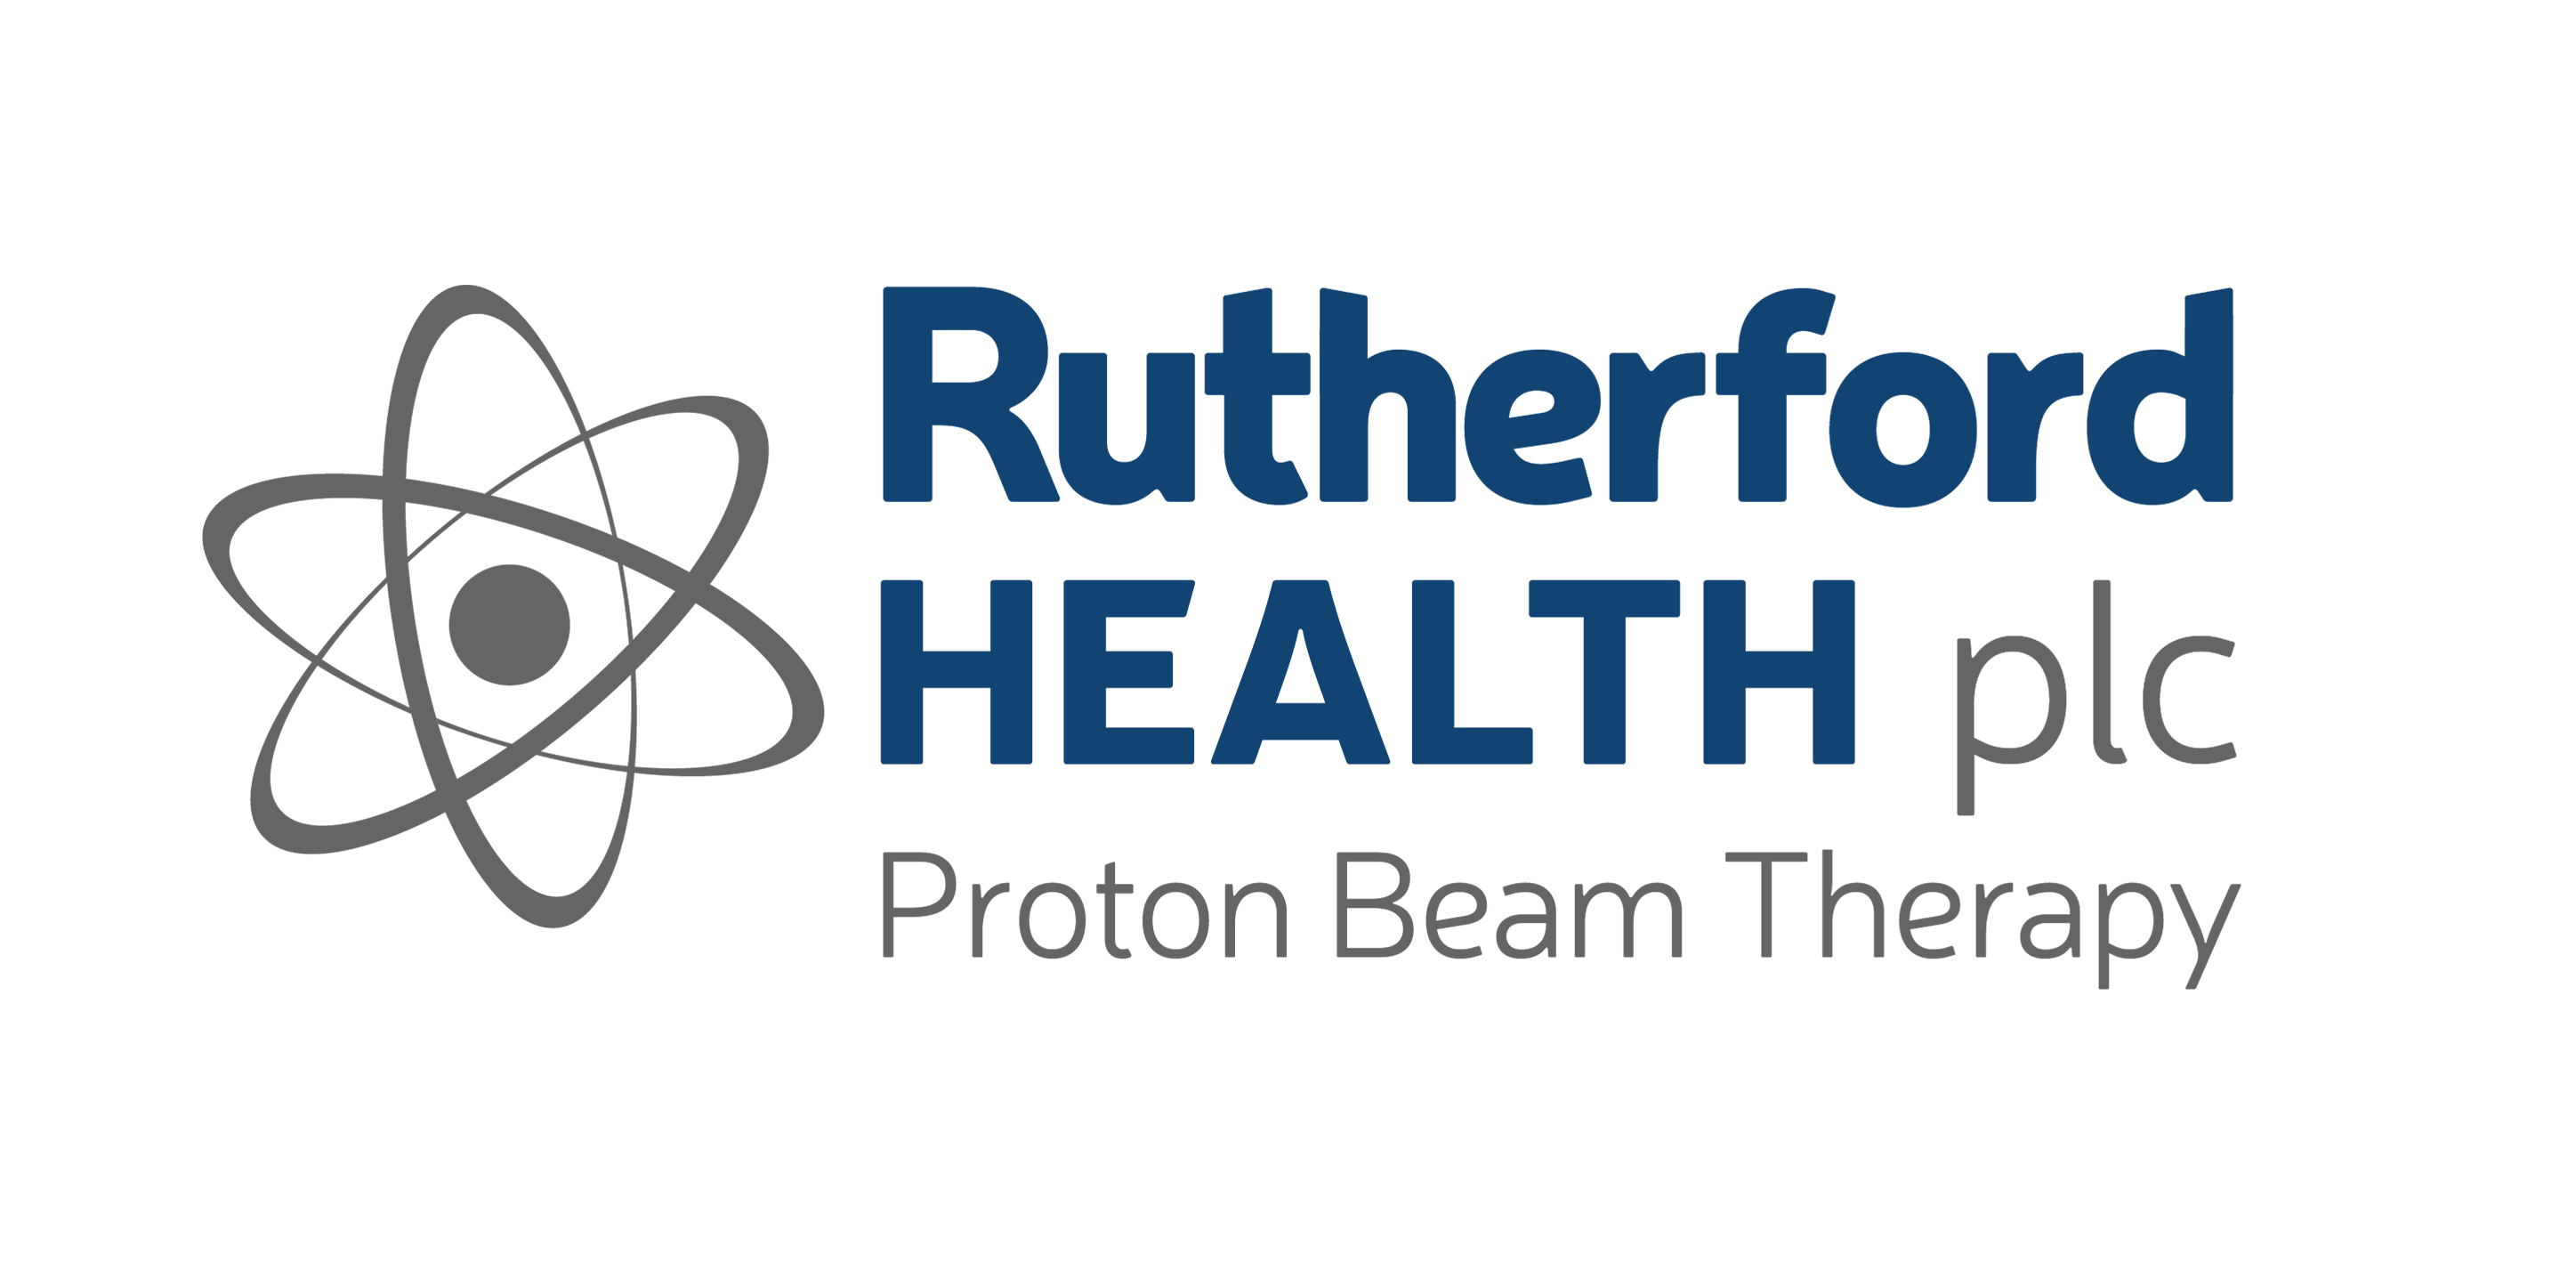 Rutherford Health plc